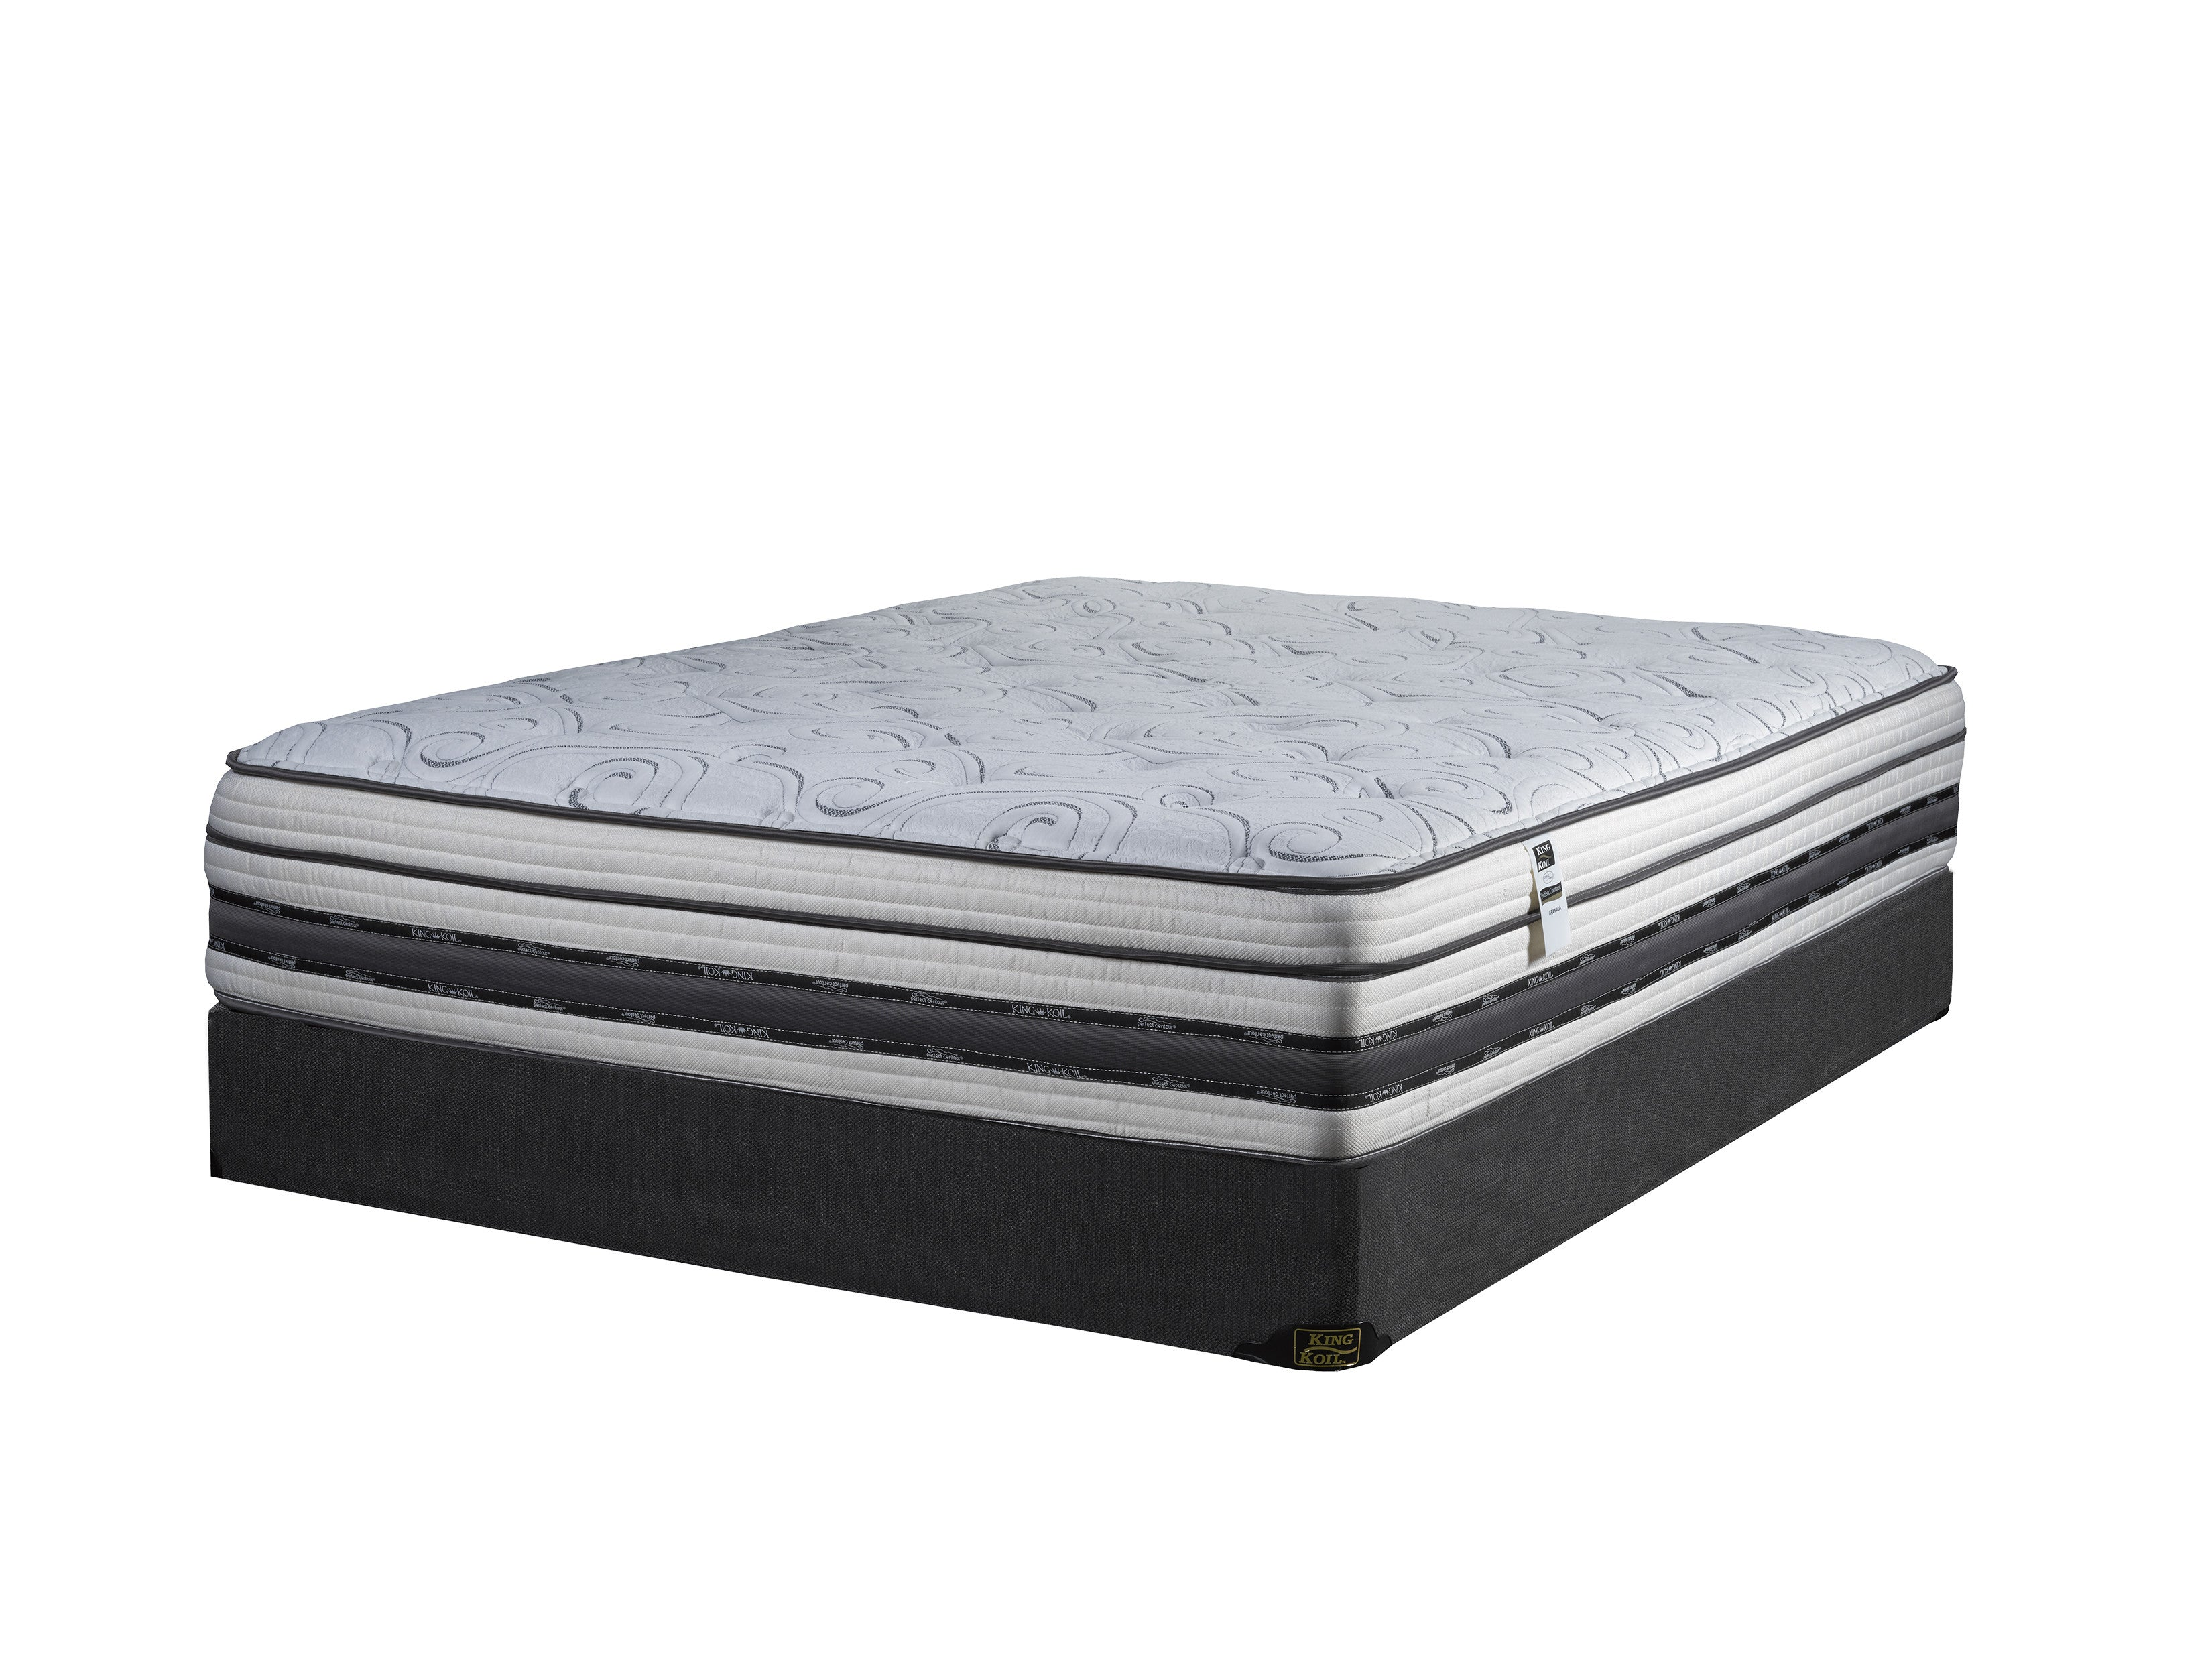 mattress sets for archived headboard on canopy of metal air and footboard bed full set white storage frame size cheap scenic queen frames